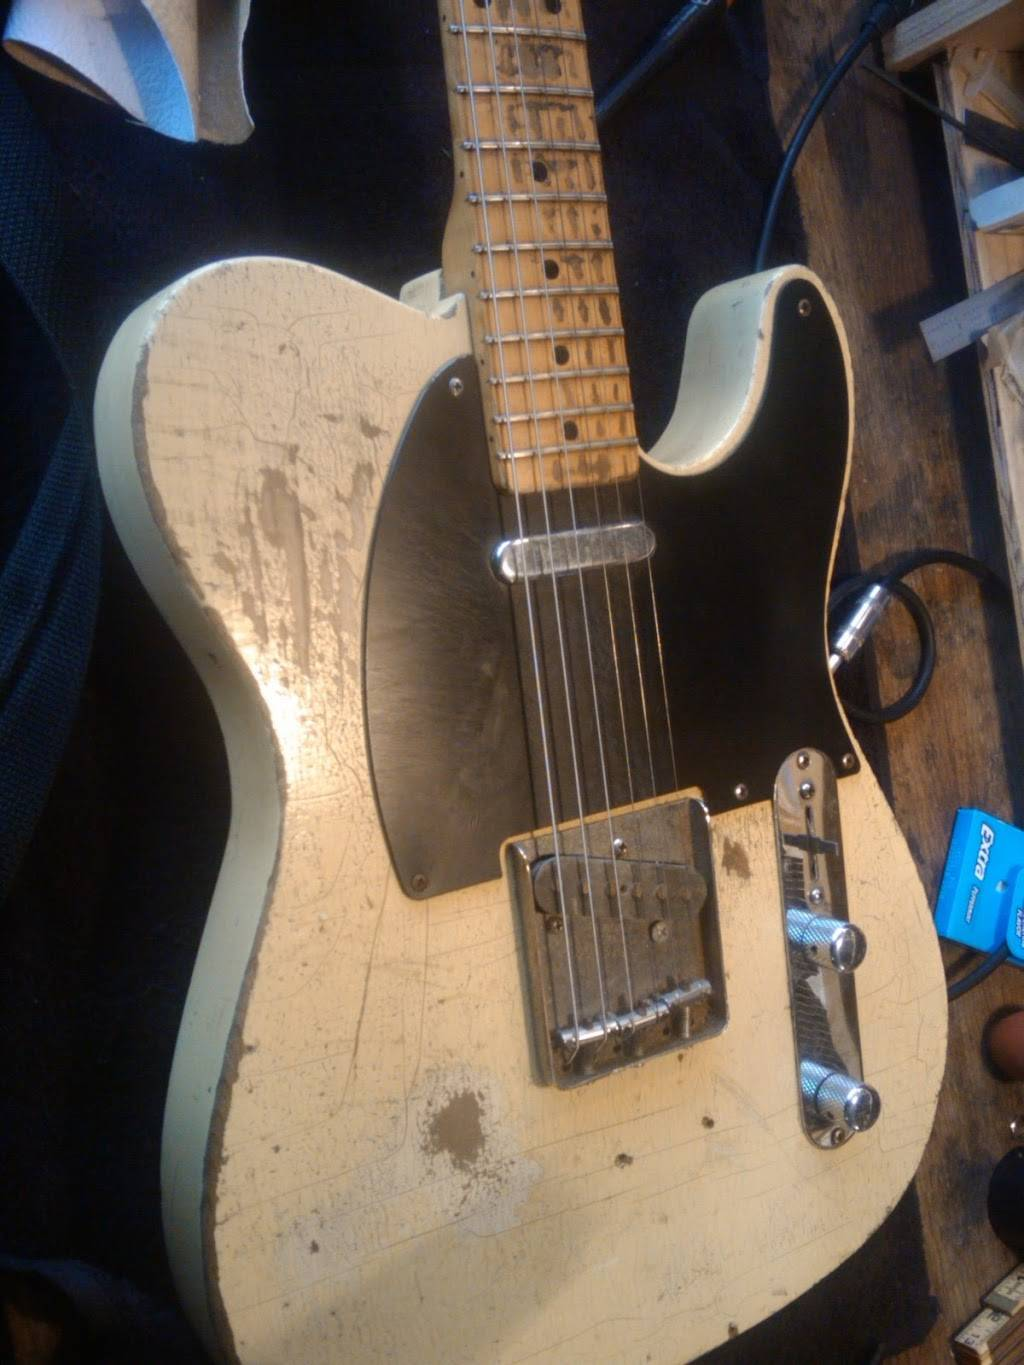 Sick String Guitar Repair - electronics store  | Photo 6 of 9 | Address: 8729 N Delaware Ave, Portland, OR 97217, USA | Phone: (971) 930-4133